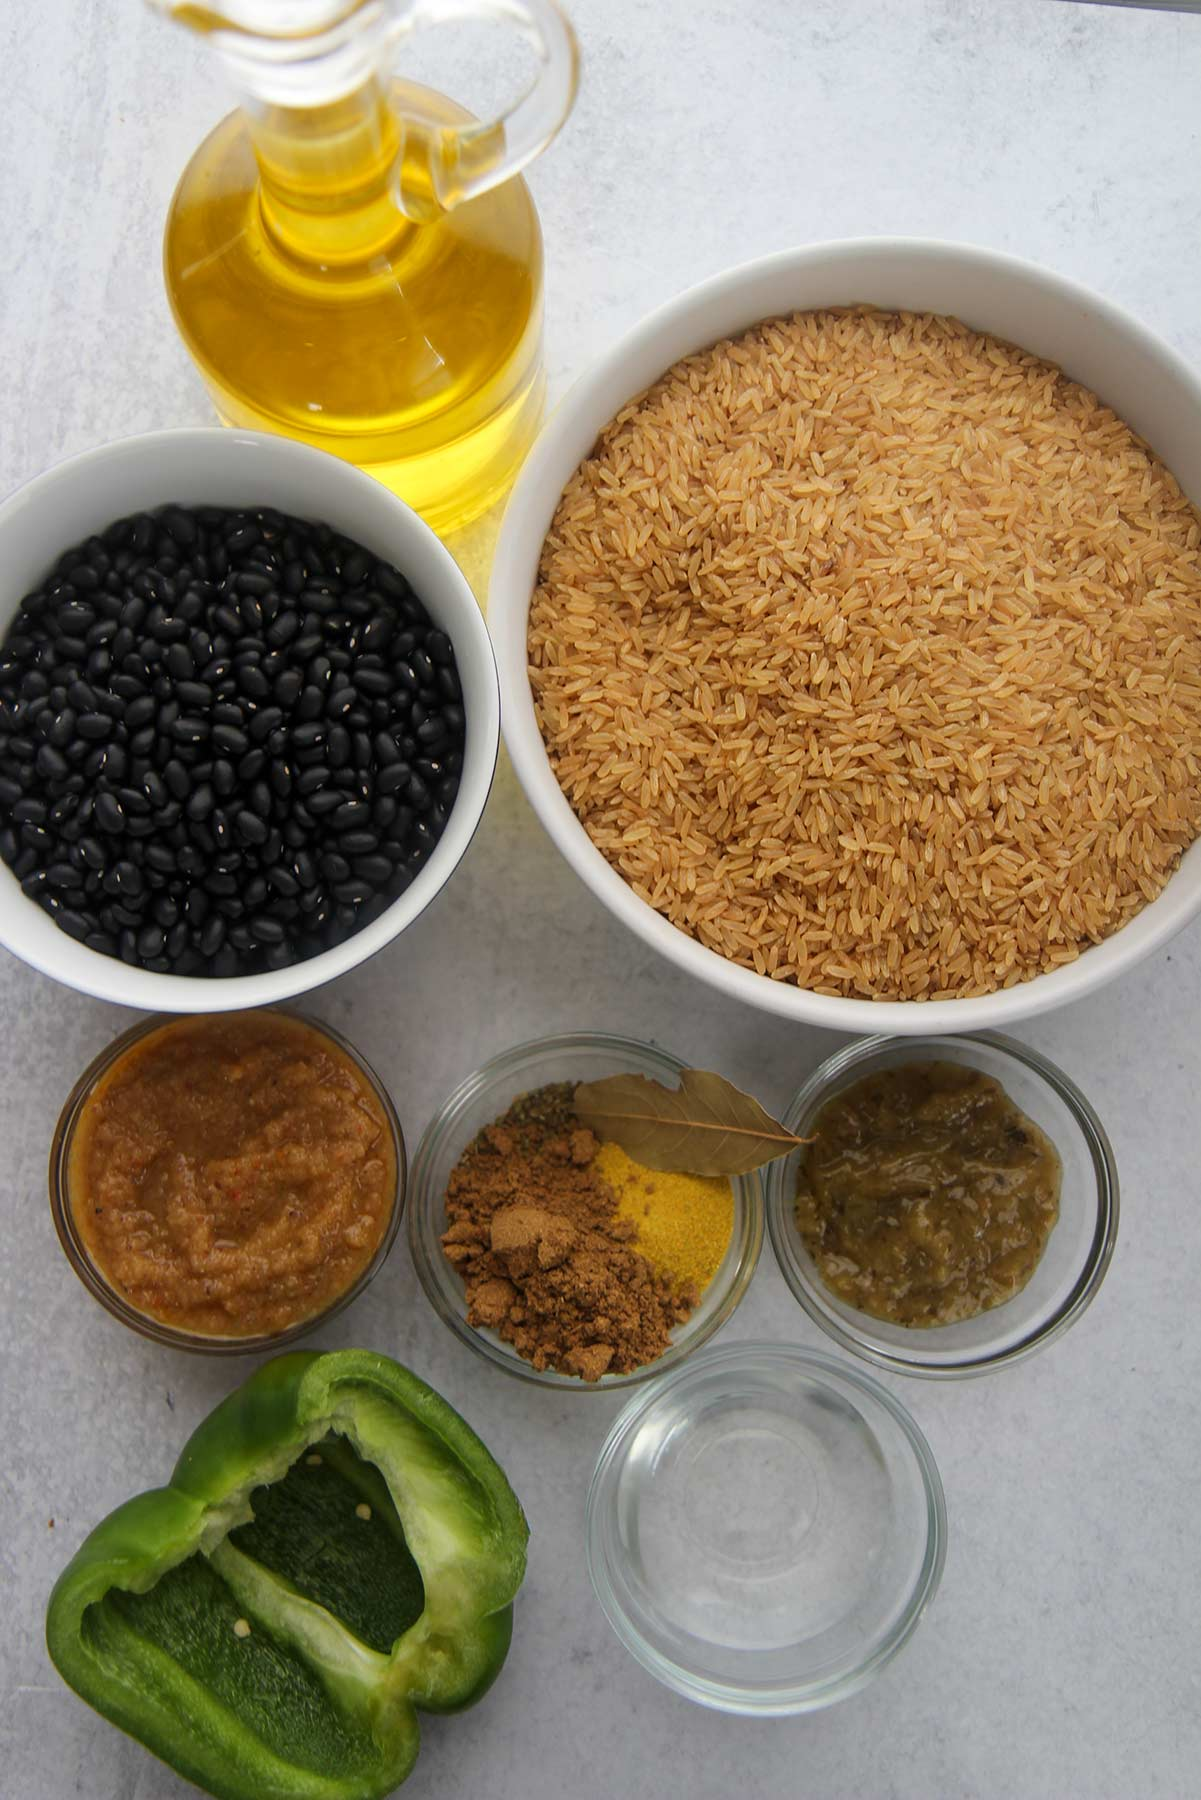 ingredients for congri, dried black beans, brown rice, small bowls with spices, vinegar, bay leaf, sofrito, and recaito. Oil and a green bell pepper.